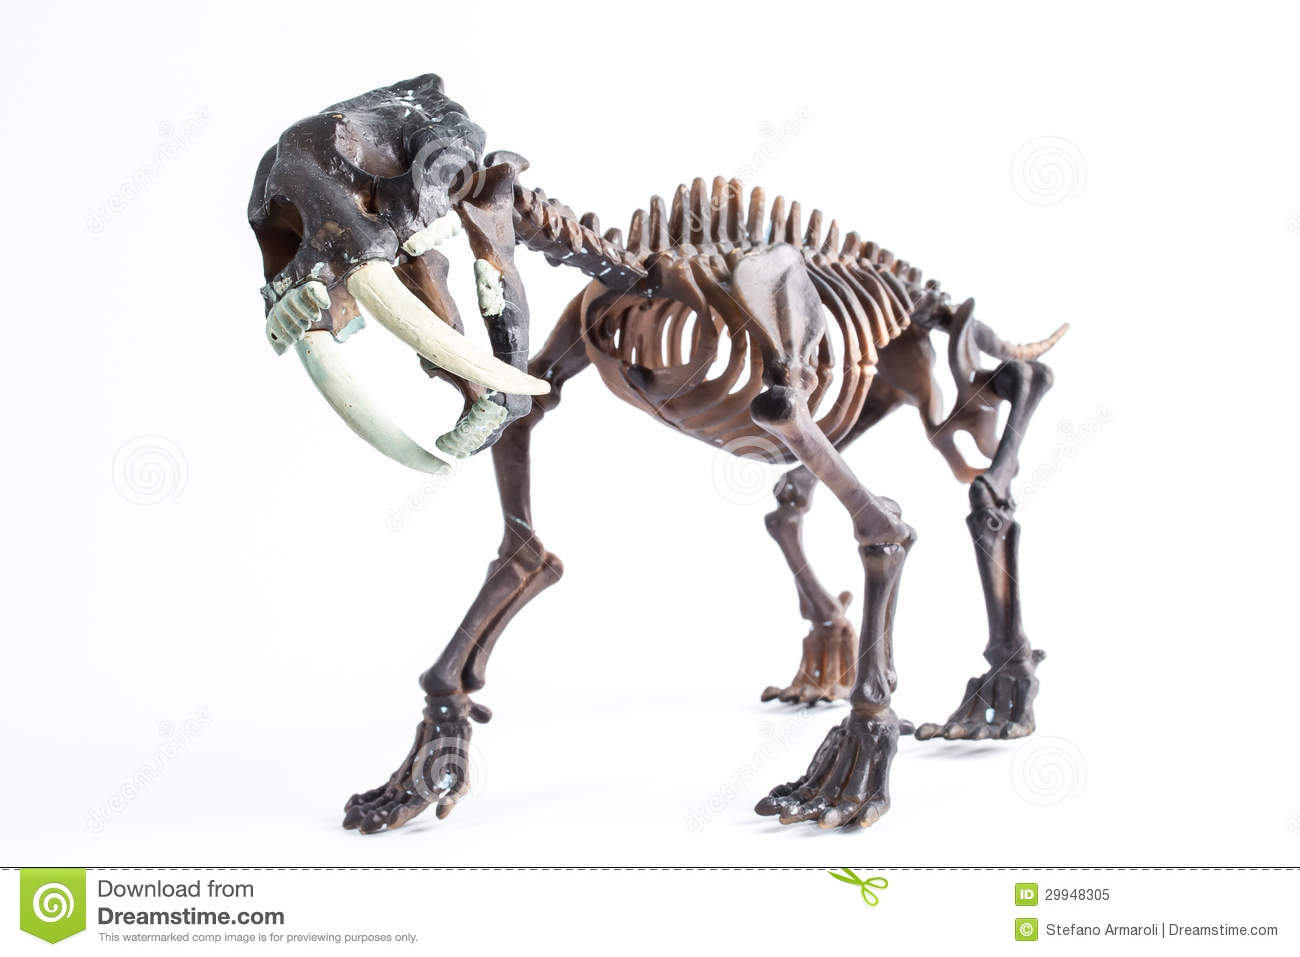 Saber-toothed tiger stock image. Image of saber, claw ...